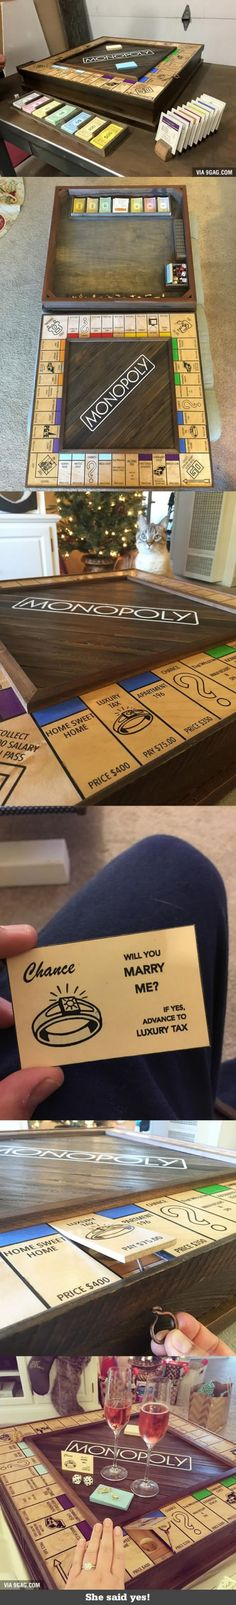 This dude proposes using custom-made monopoly board with secret compartment